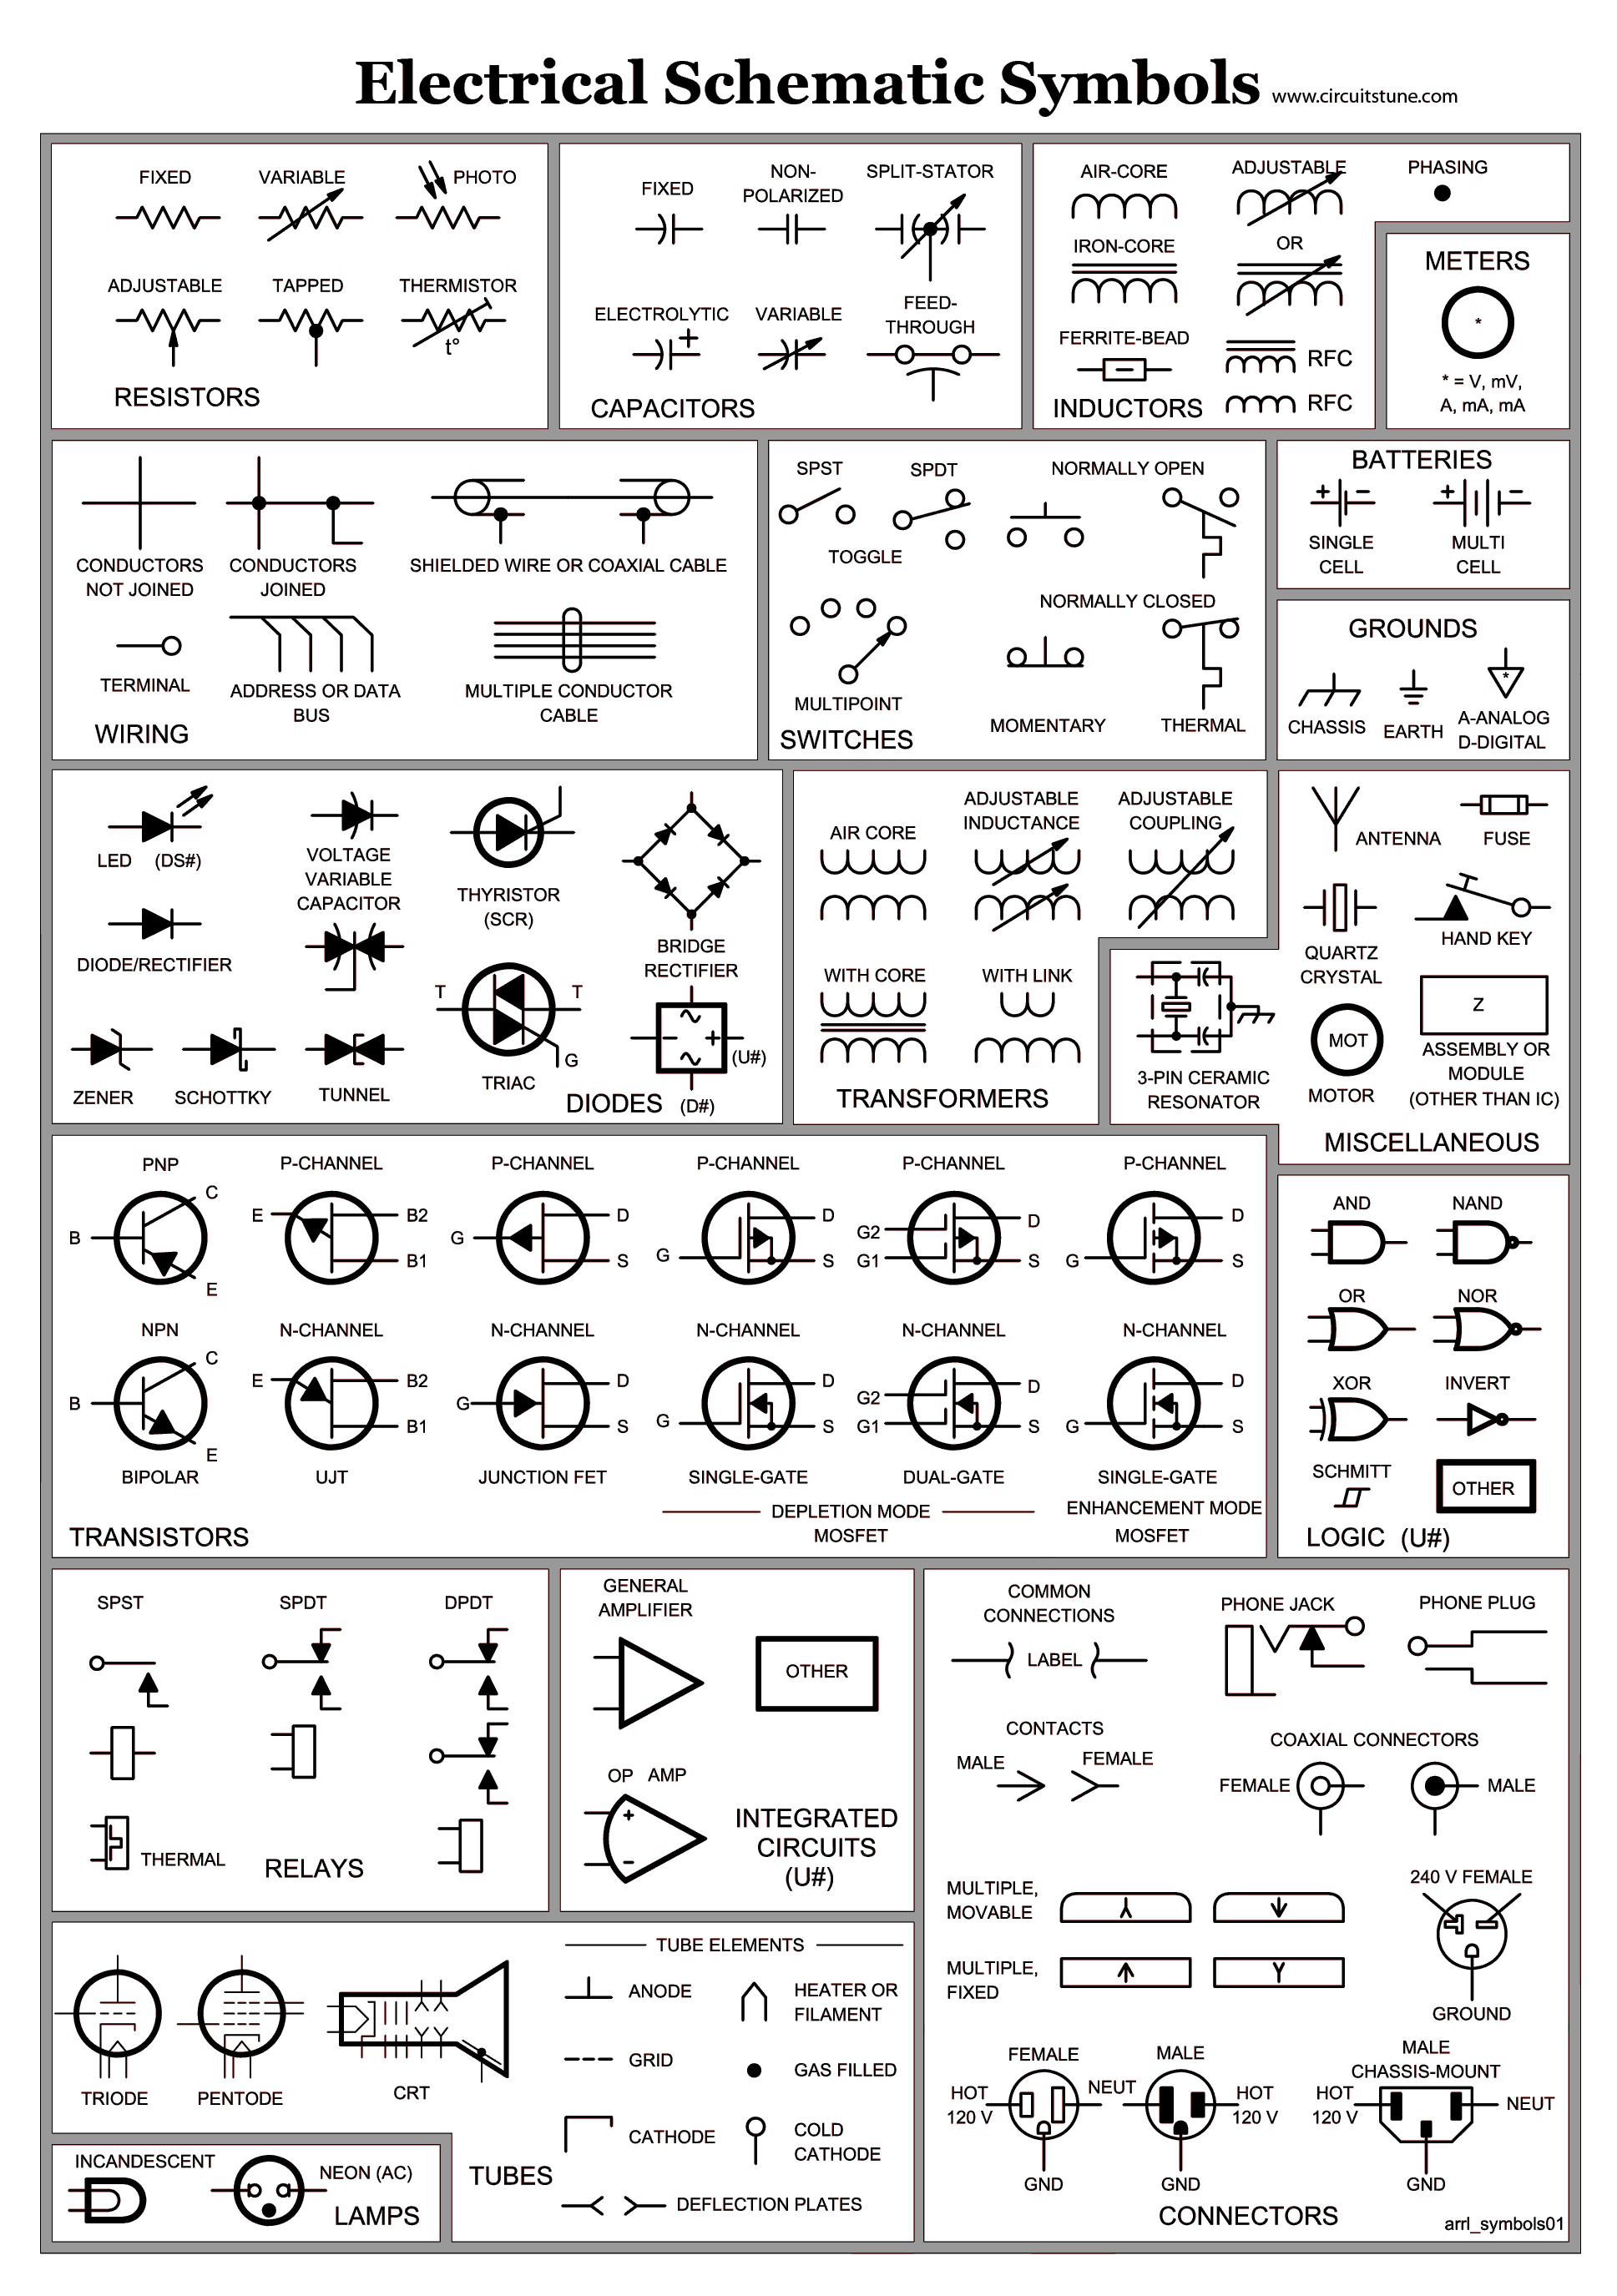 Circuit schematic symbols BMET Wiki FANDOM powered by Wikia